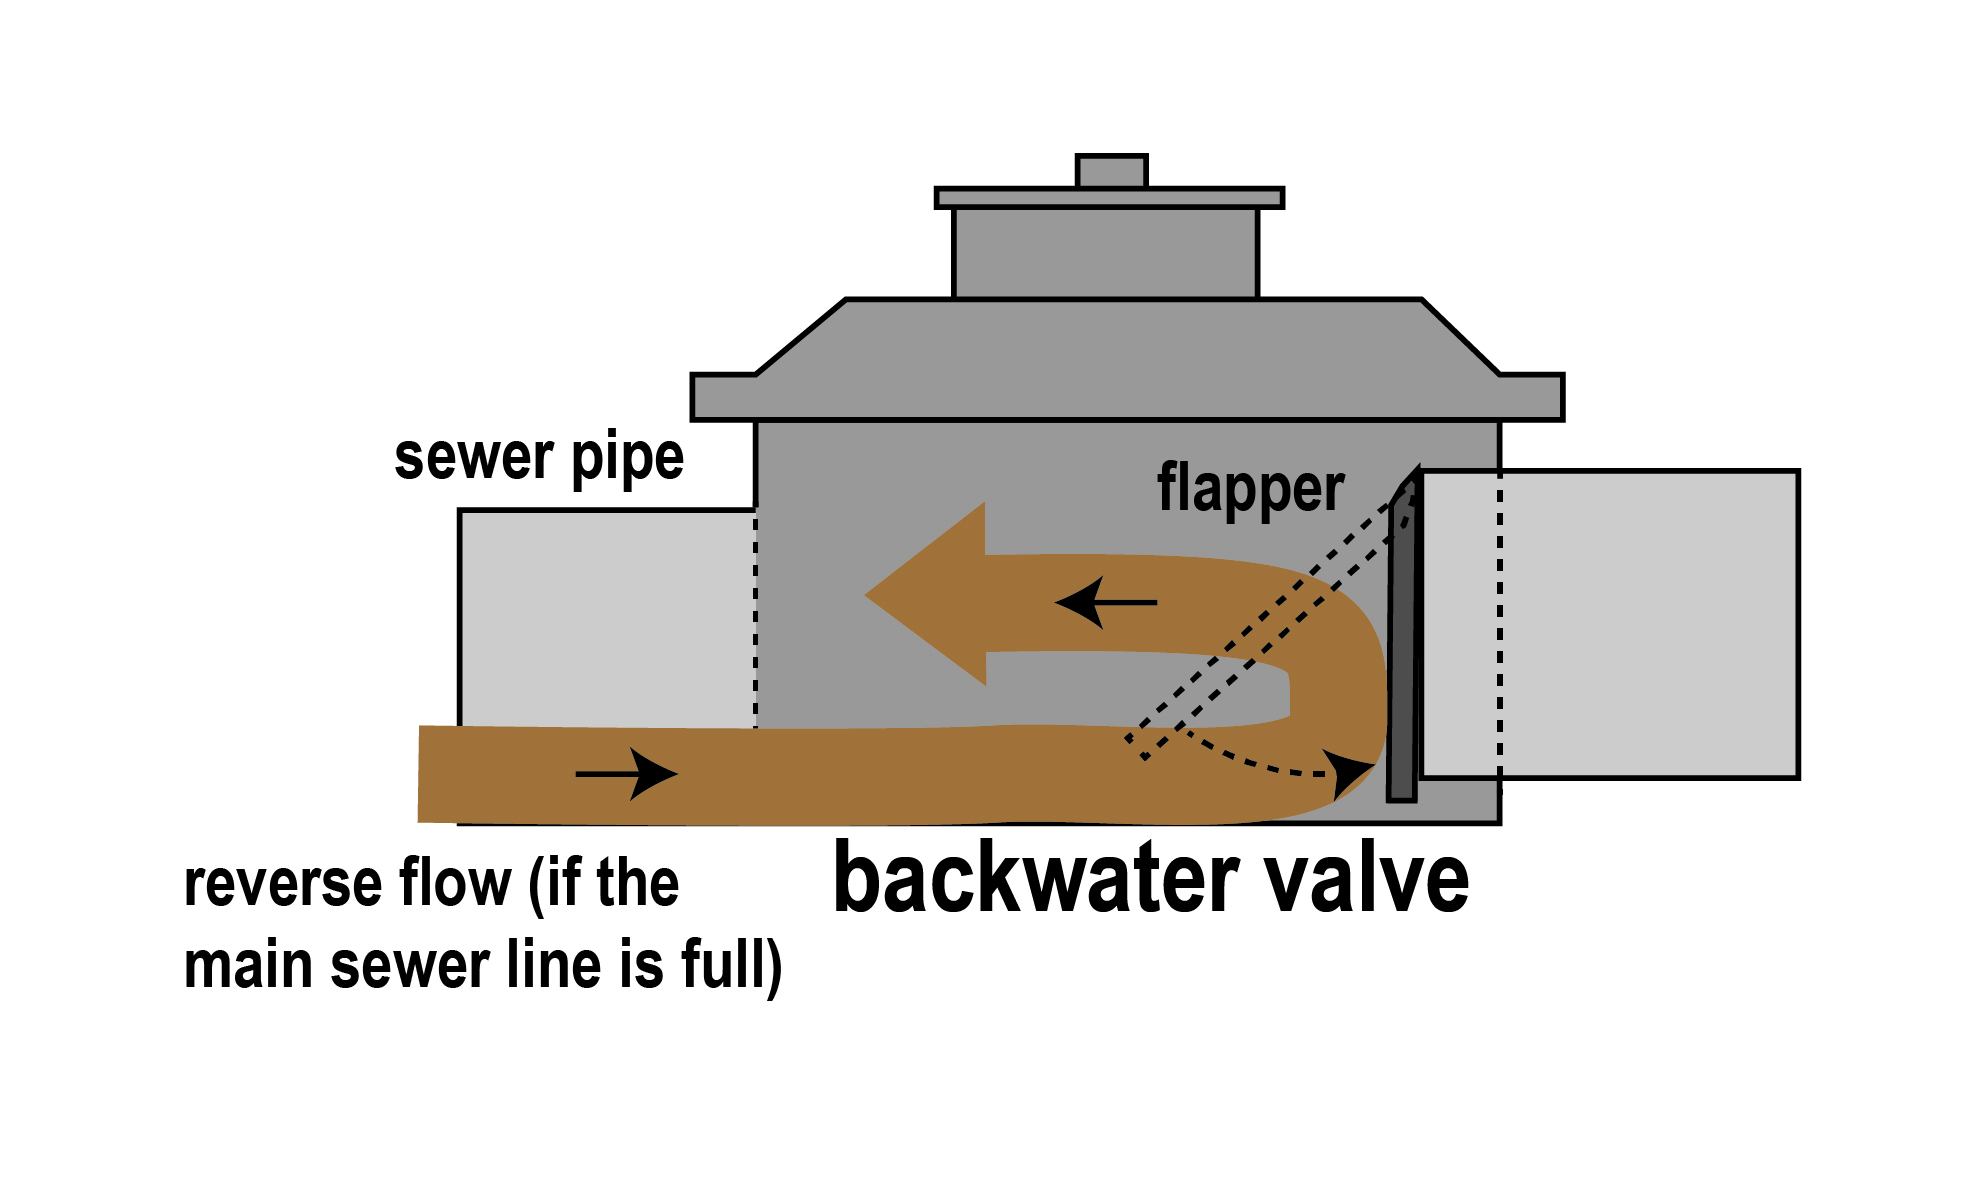 Diagram of a backwater valve showing how the valve closes when the flow reverses.